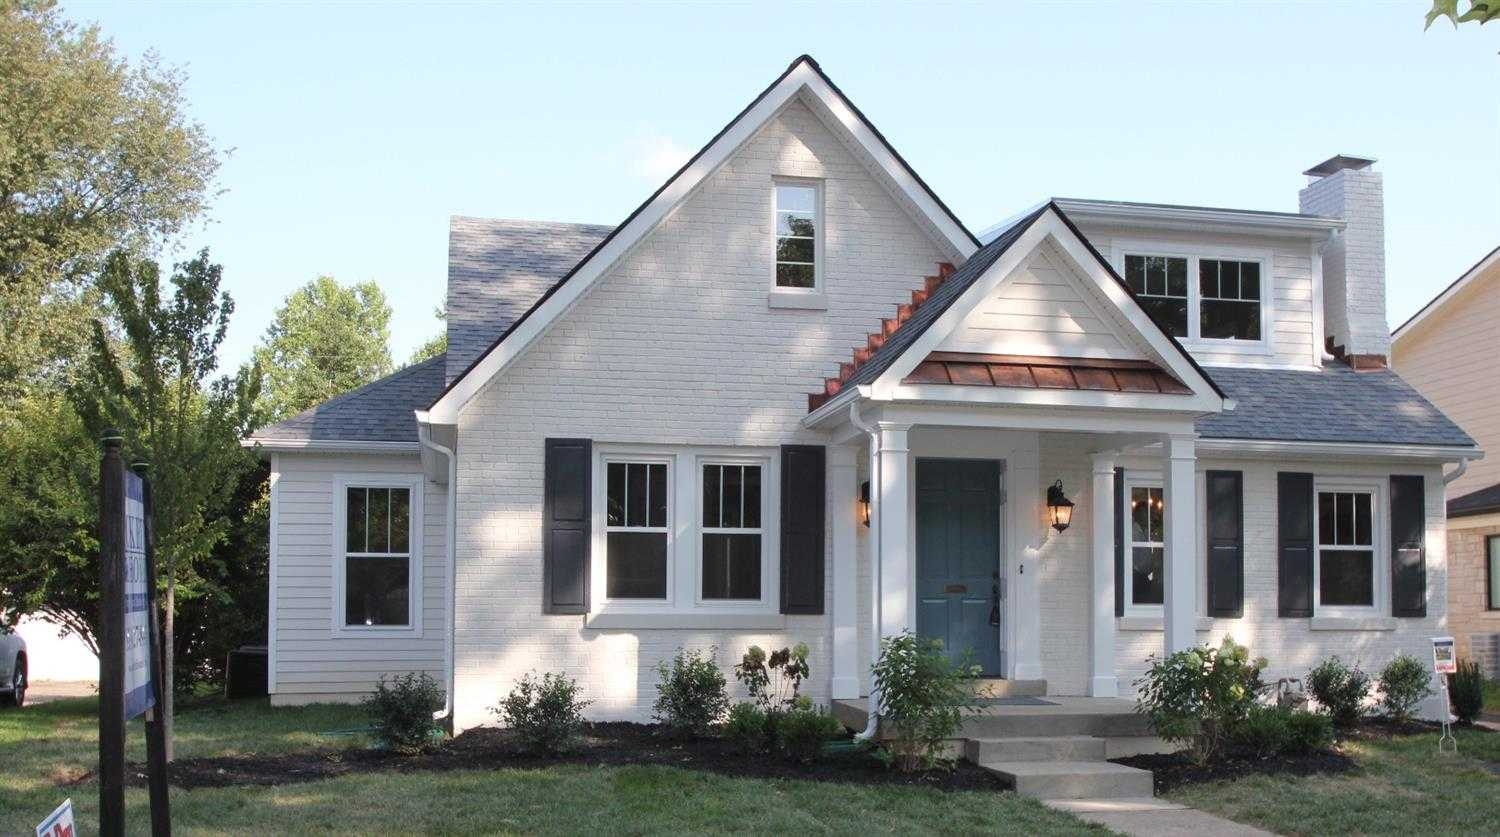 $712,000 - 4Br/3Ba -  for Sale in Chevy Chase, Lexington